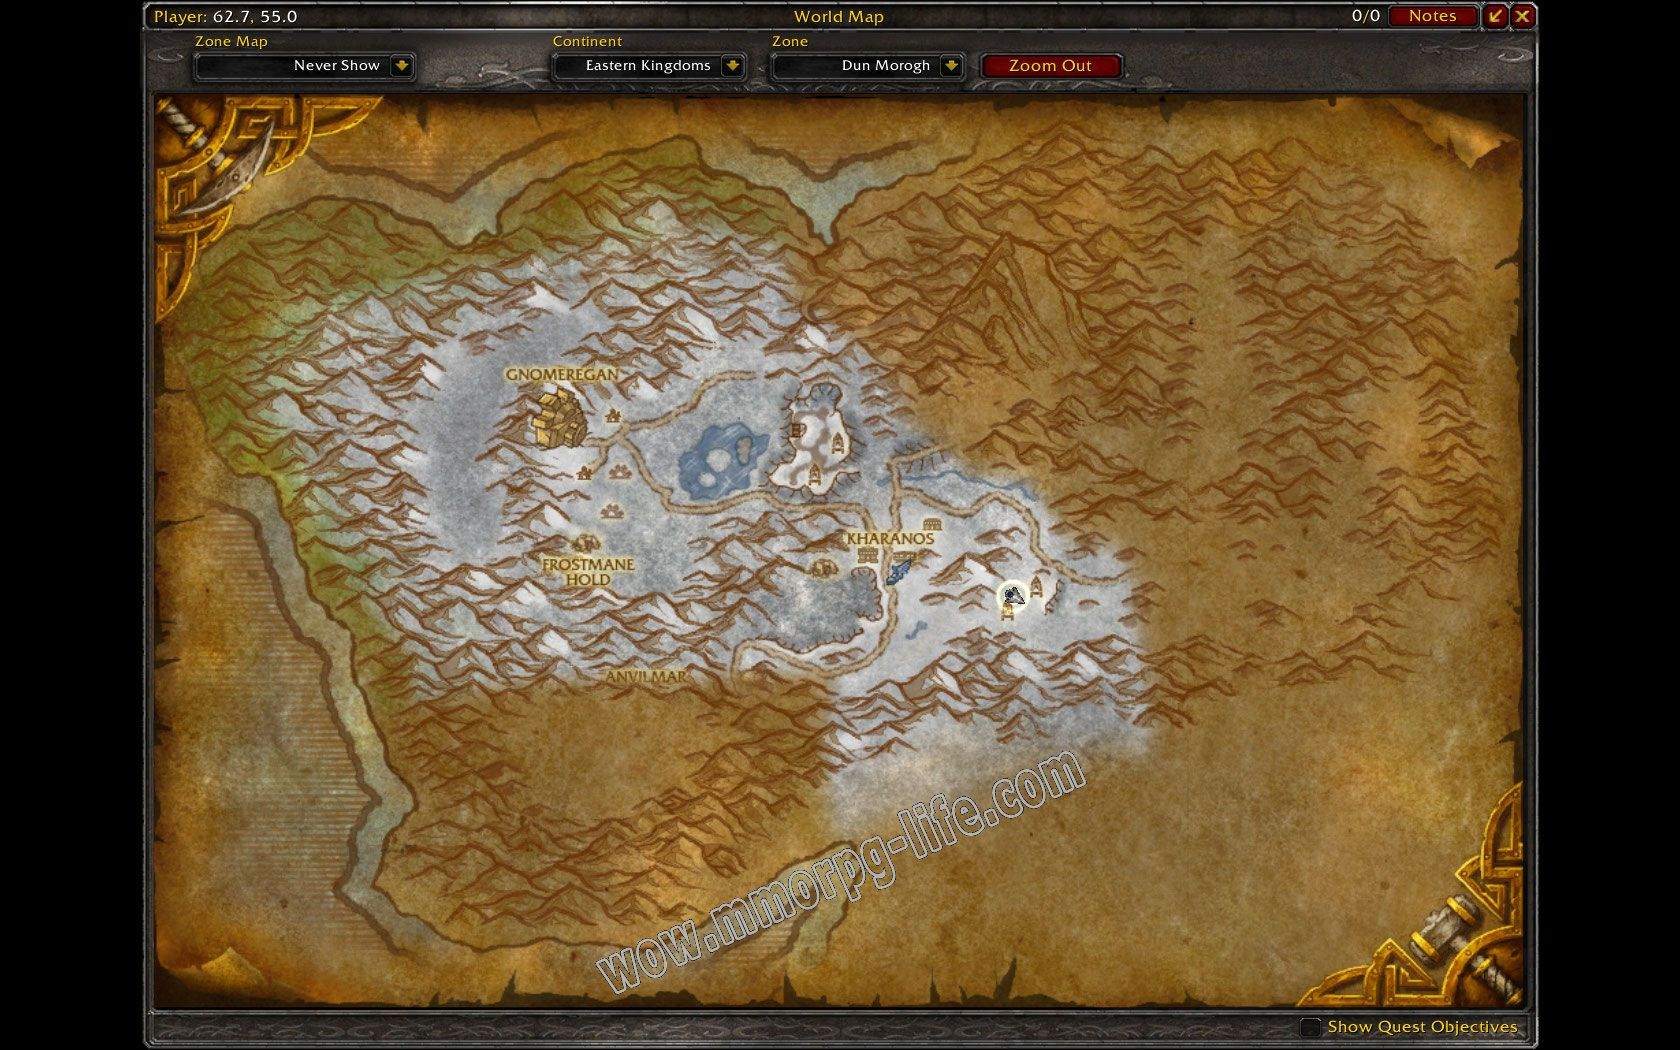 The View from Down Here   World of Warcraft Life Dun Morogh Map on